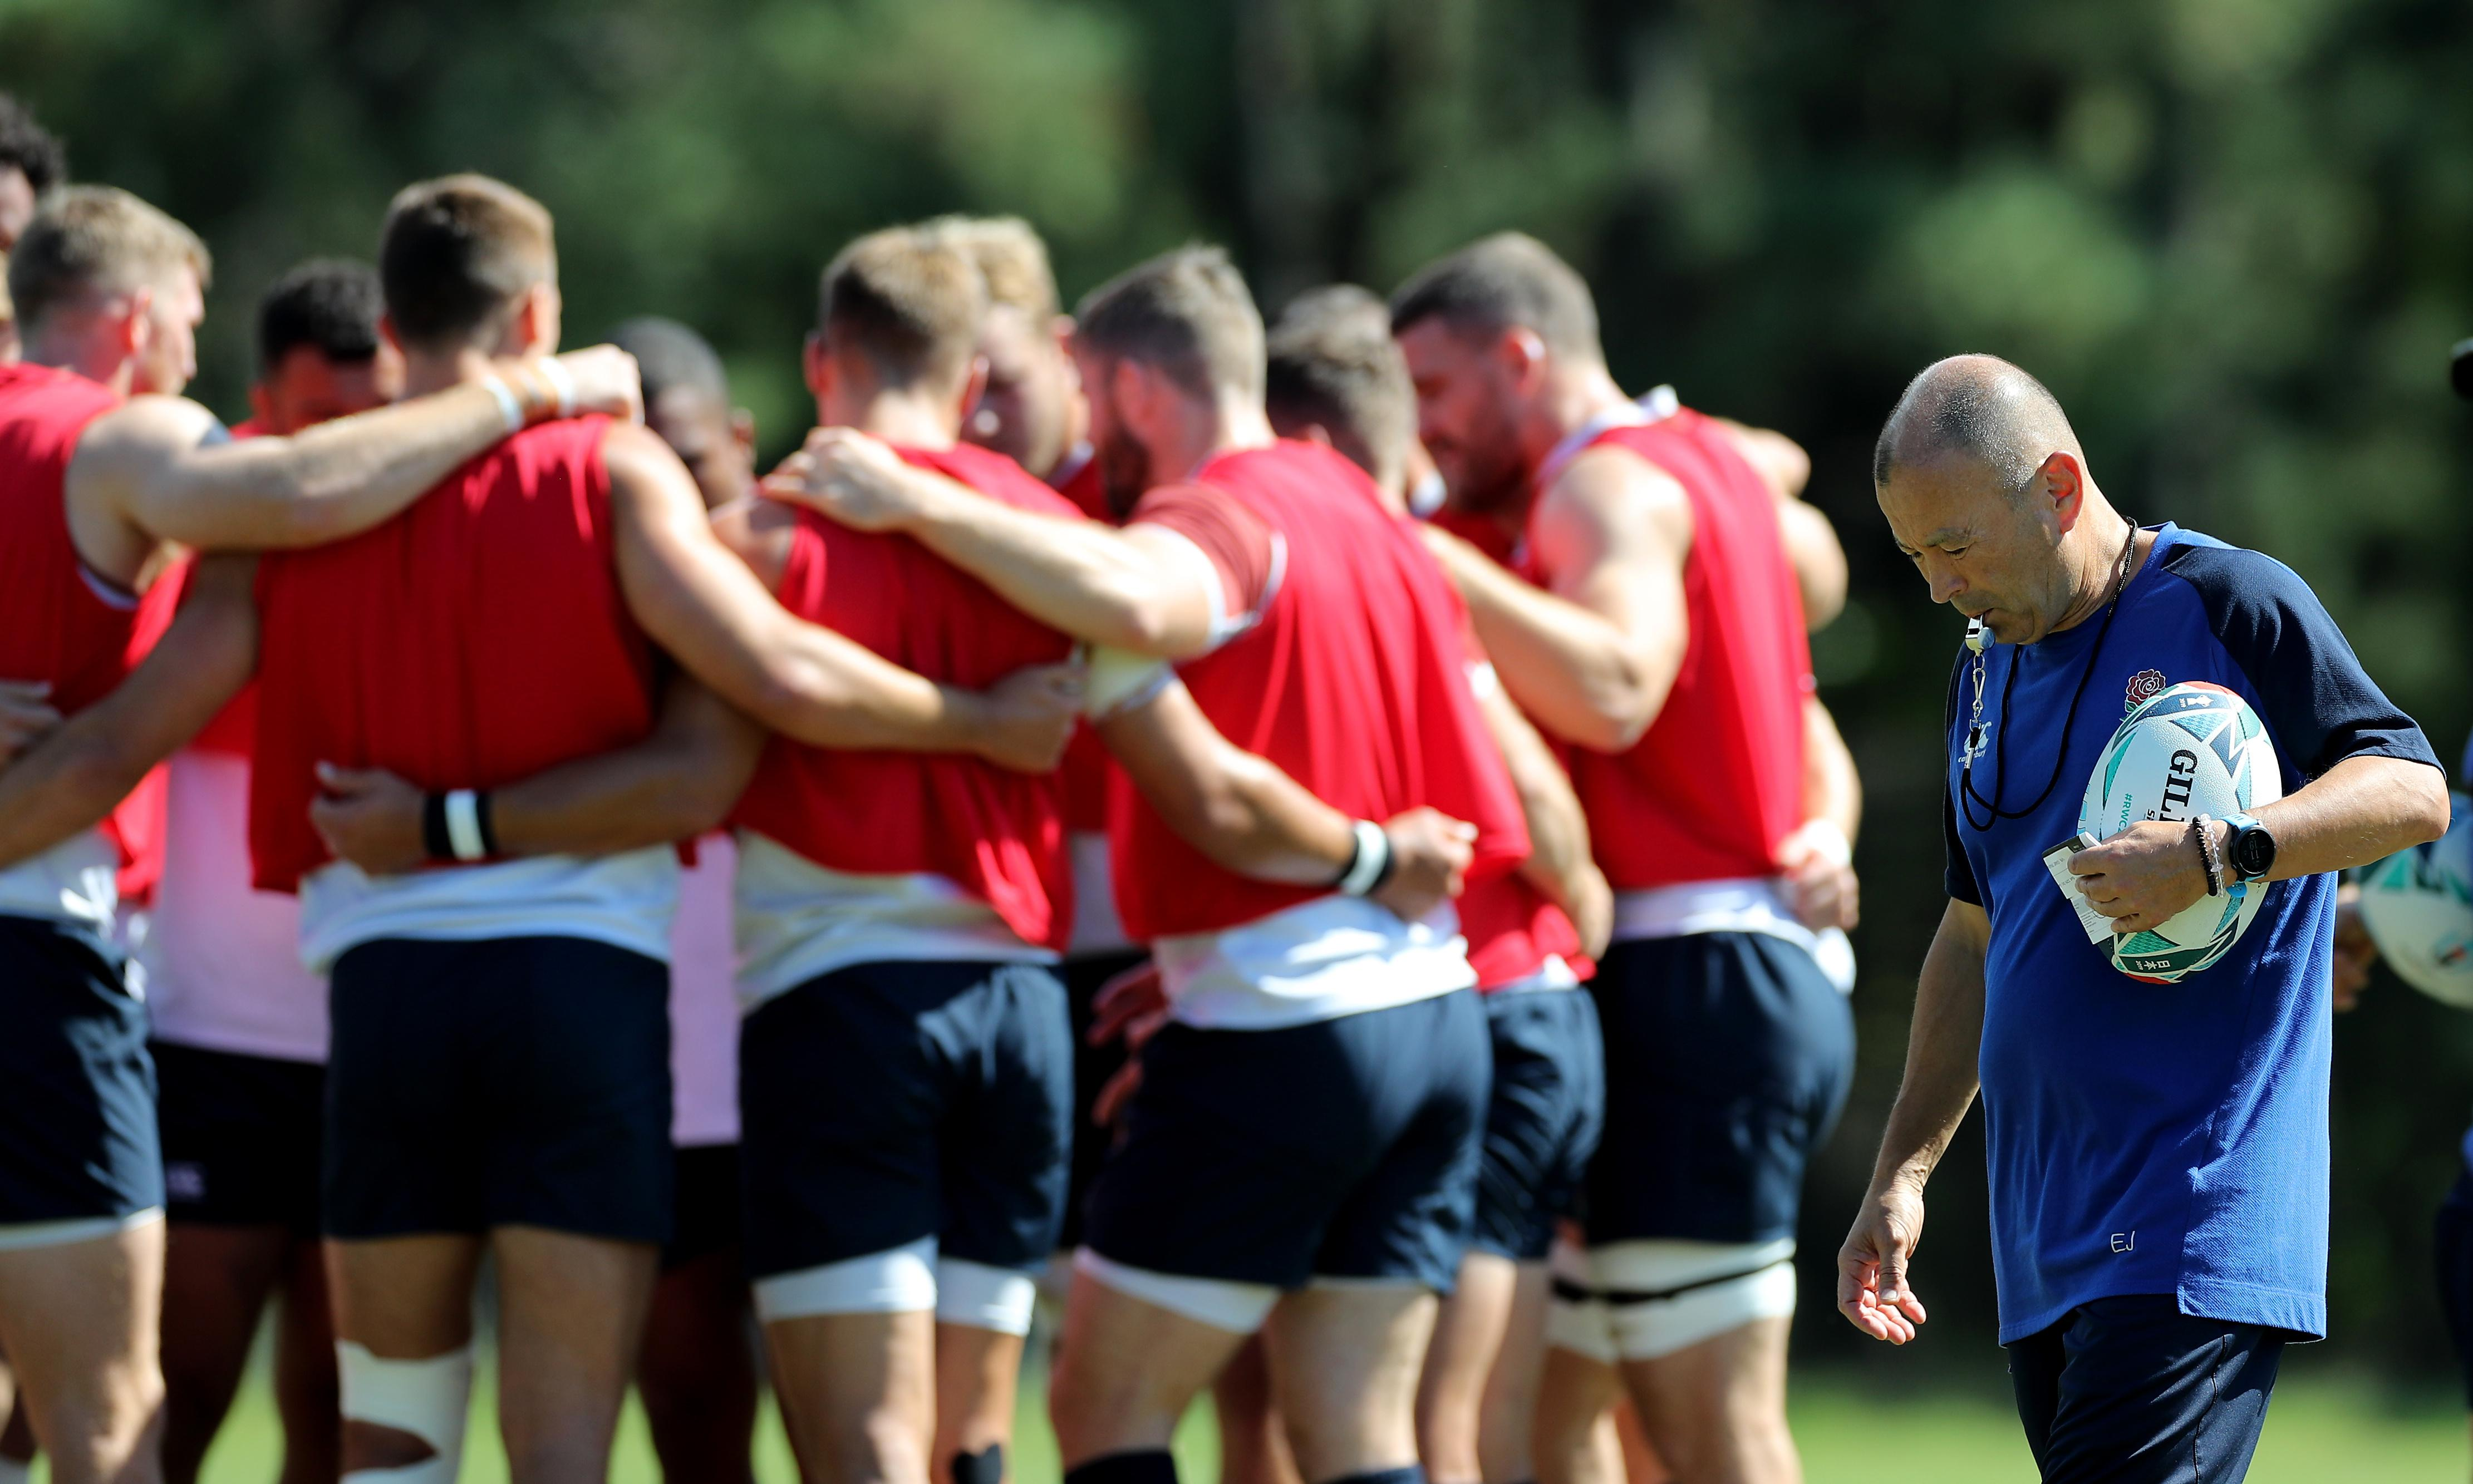 England must keep their discipline in heat of World Cup knockout stages